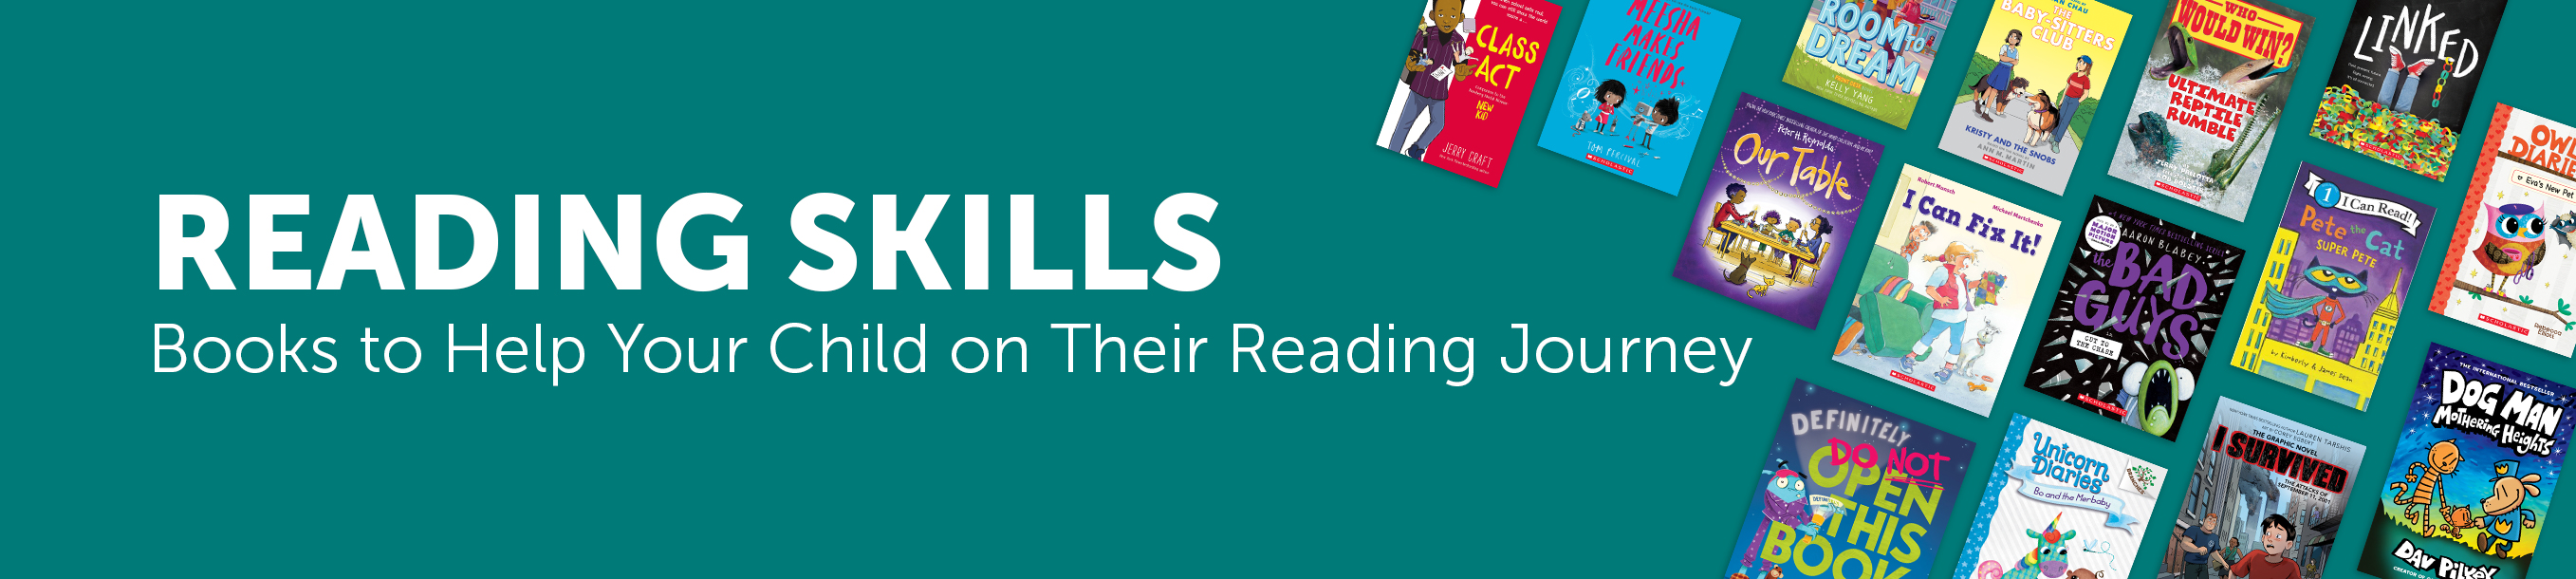 Reading Skills - Books to Help your Child on Their Reading Journey